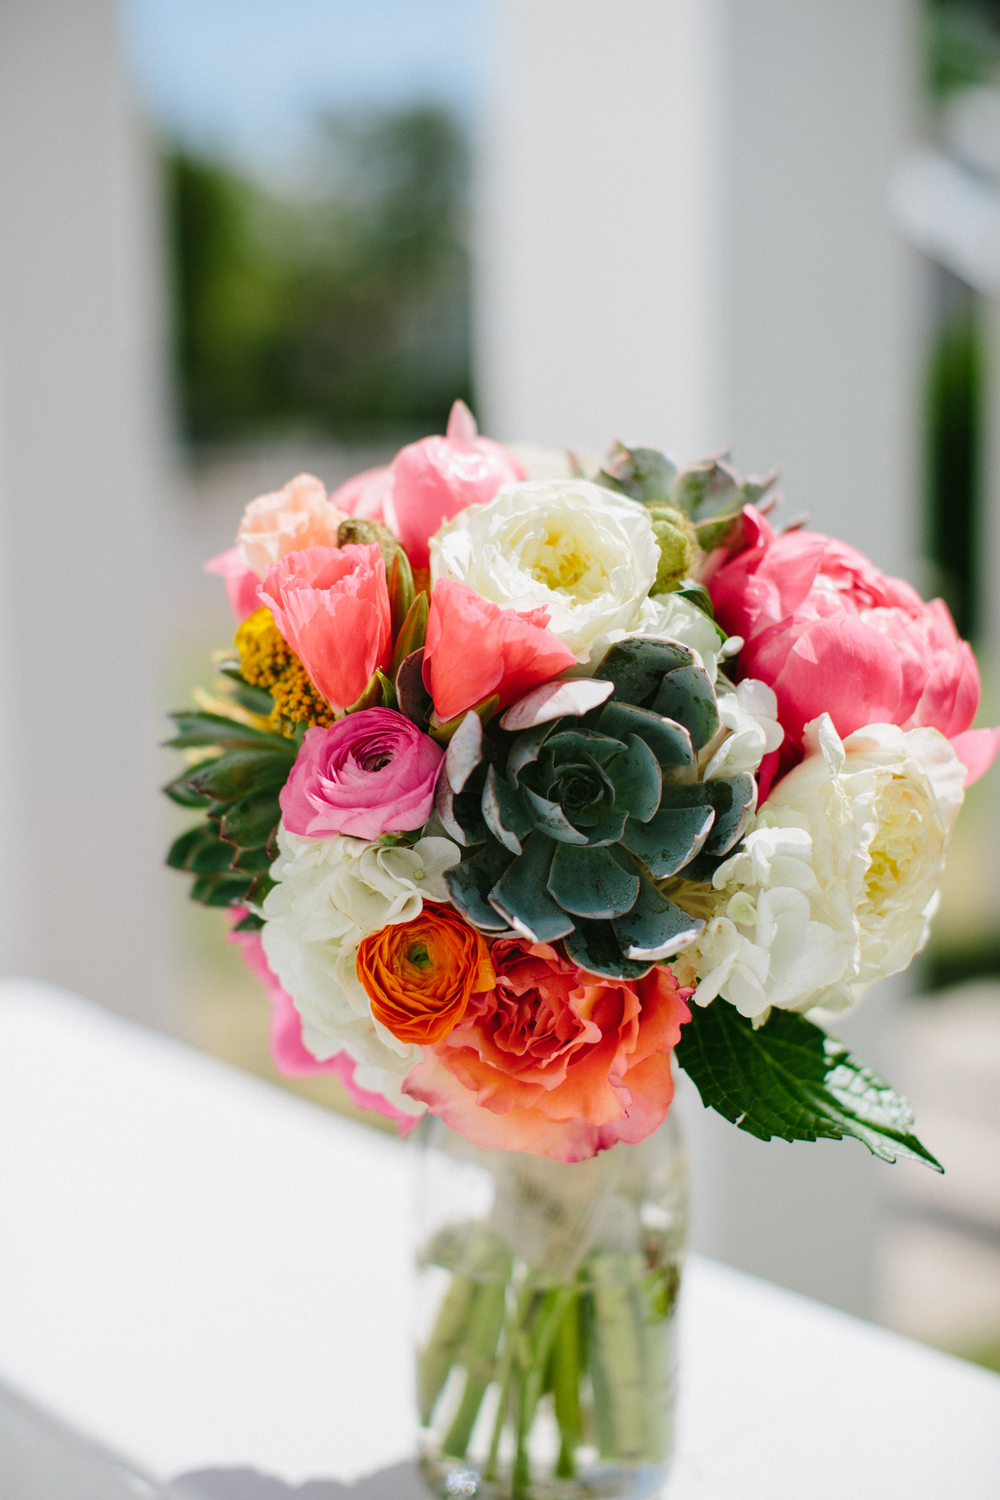 Paige-Newton-Photography-Wedding-Details-Bright-Colorful-Bouquet.jpg